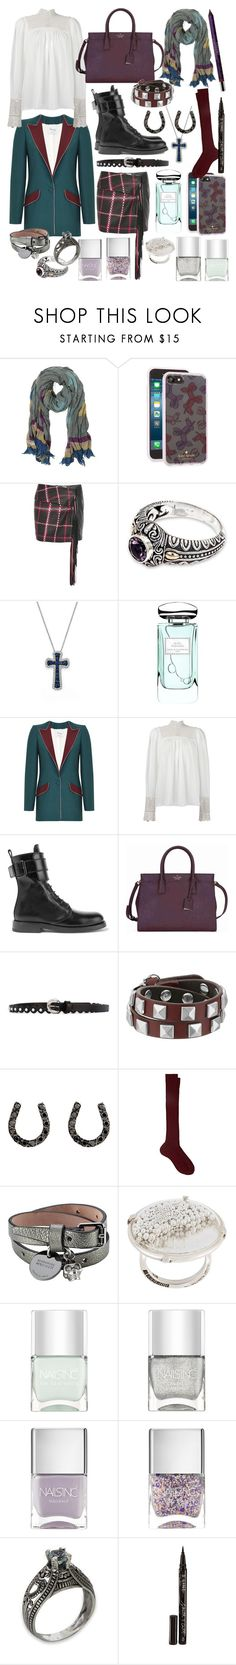 """""""unusual cosmic love"""" by nothingisnormal ❤ liked on Polyvore featuring Zadig & Voltaire, Kate Spade, Magda Butrym, NOVICA, Bloomingdale's, By Terry, Hebe Studio, Ann Demeulemeester, Orciani and Rebecca Minkoff"""